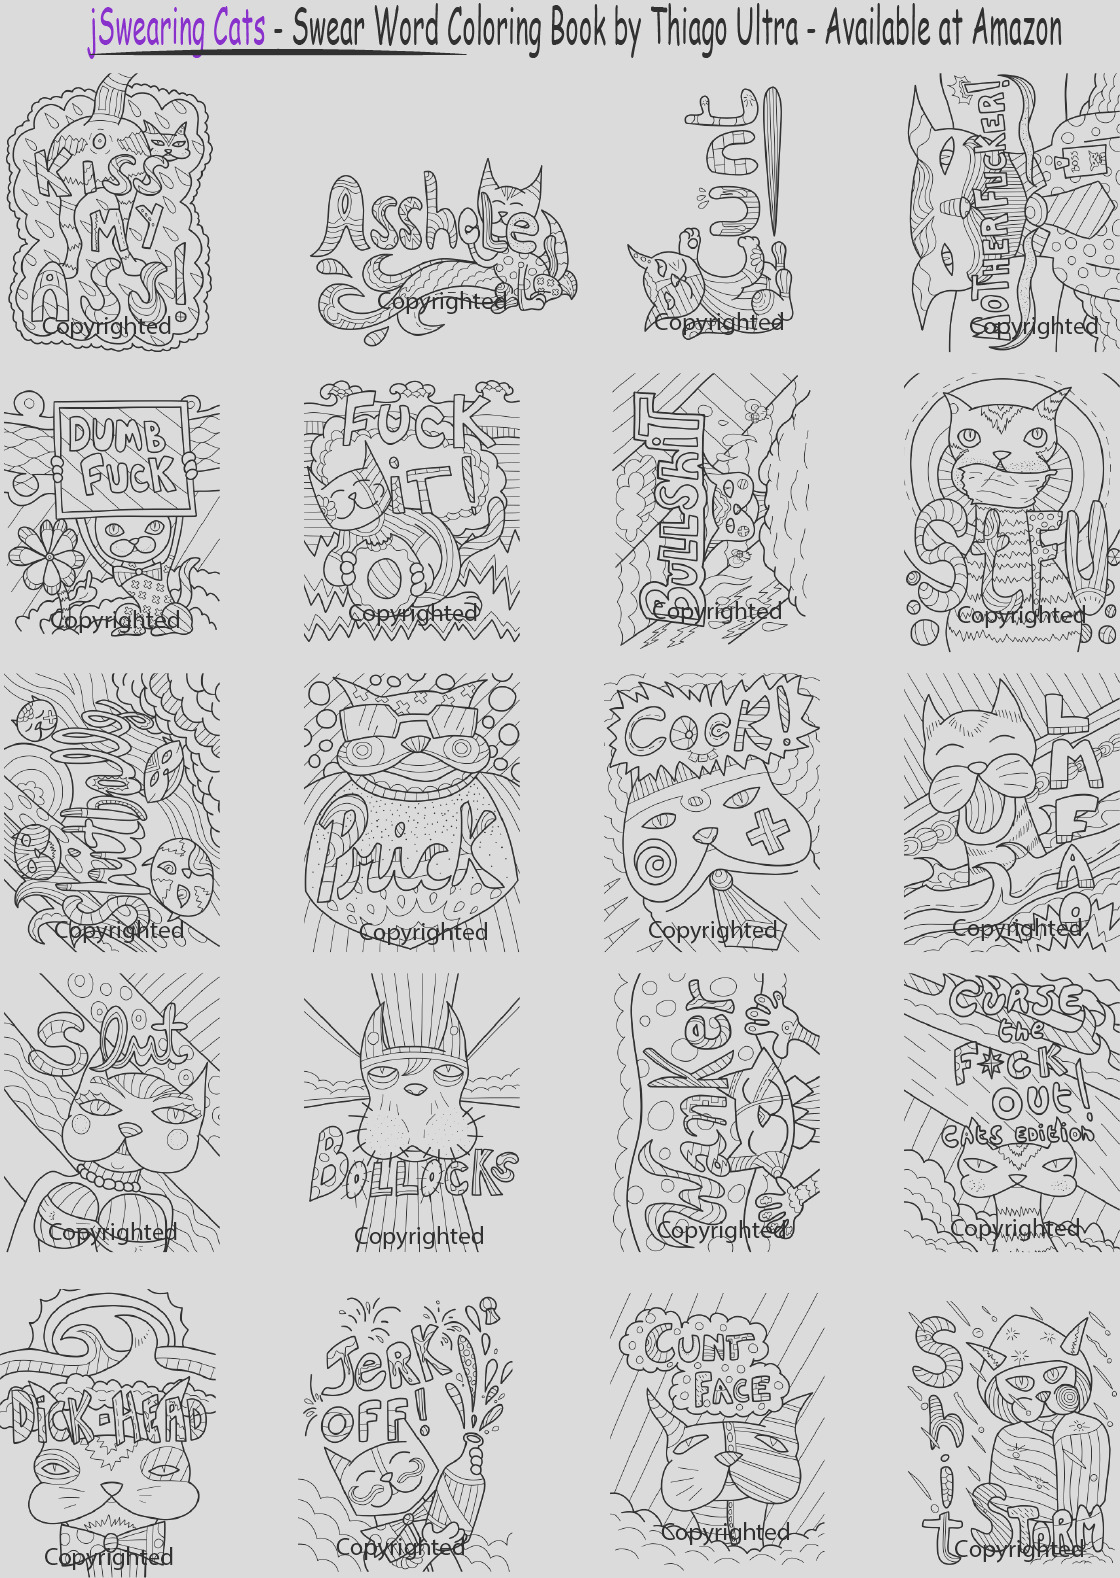 fck it free page sample swearing cats coloring book